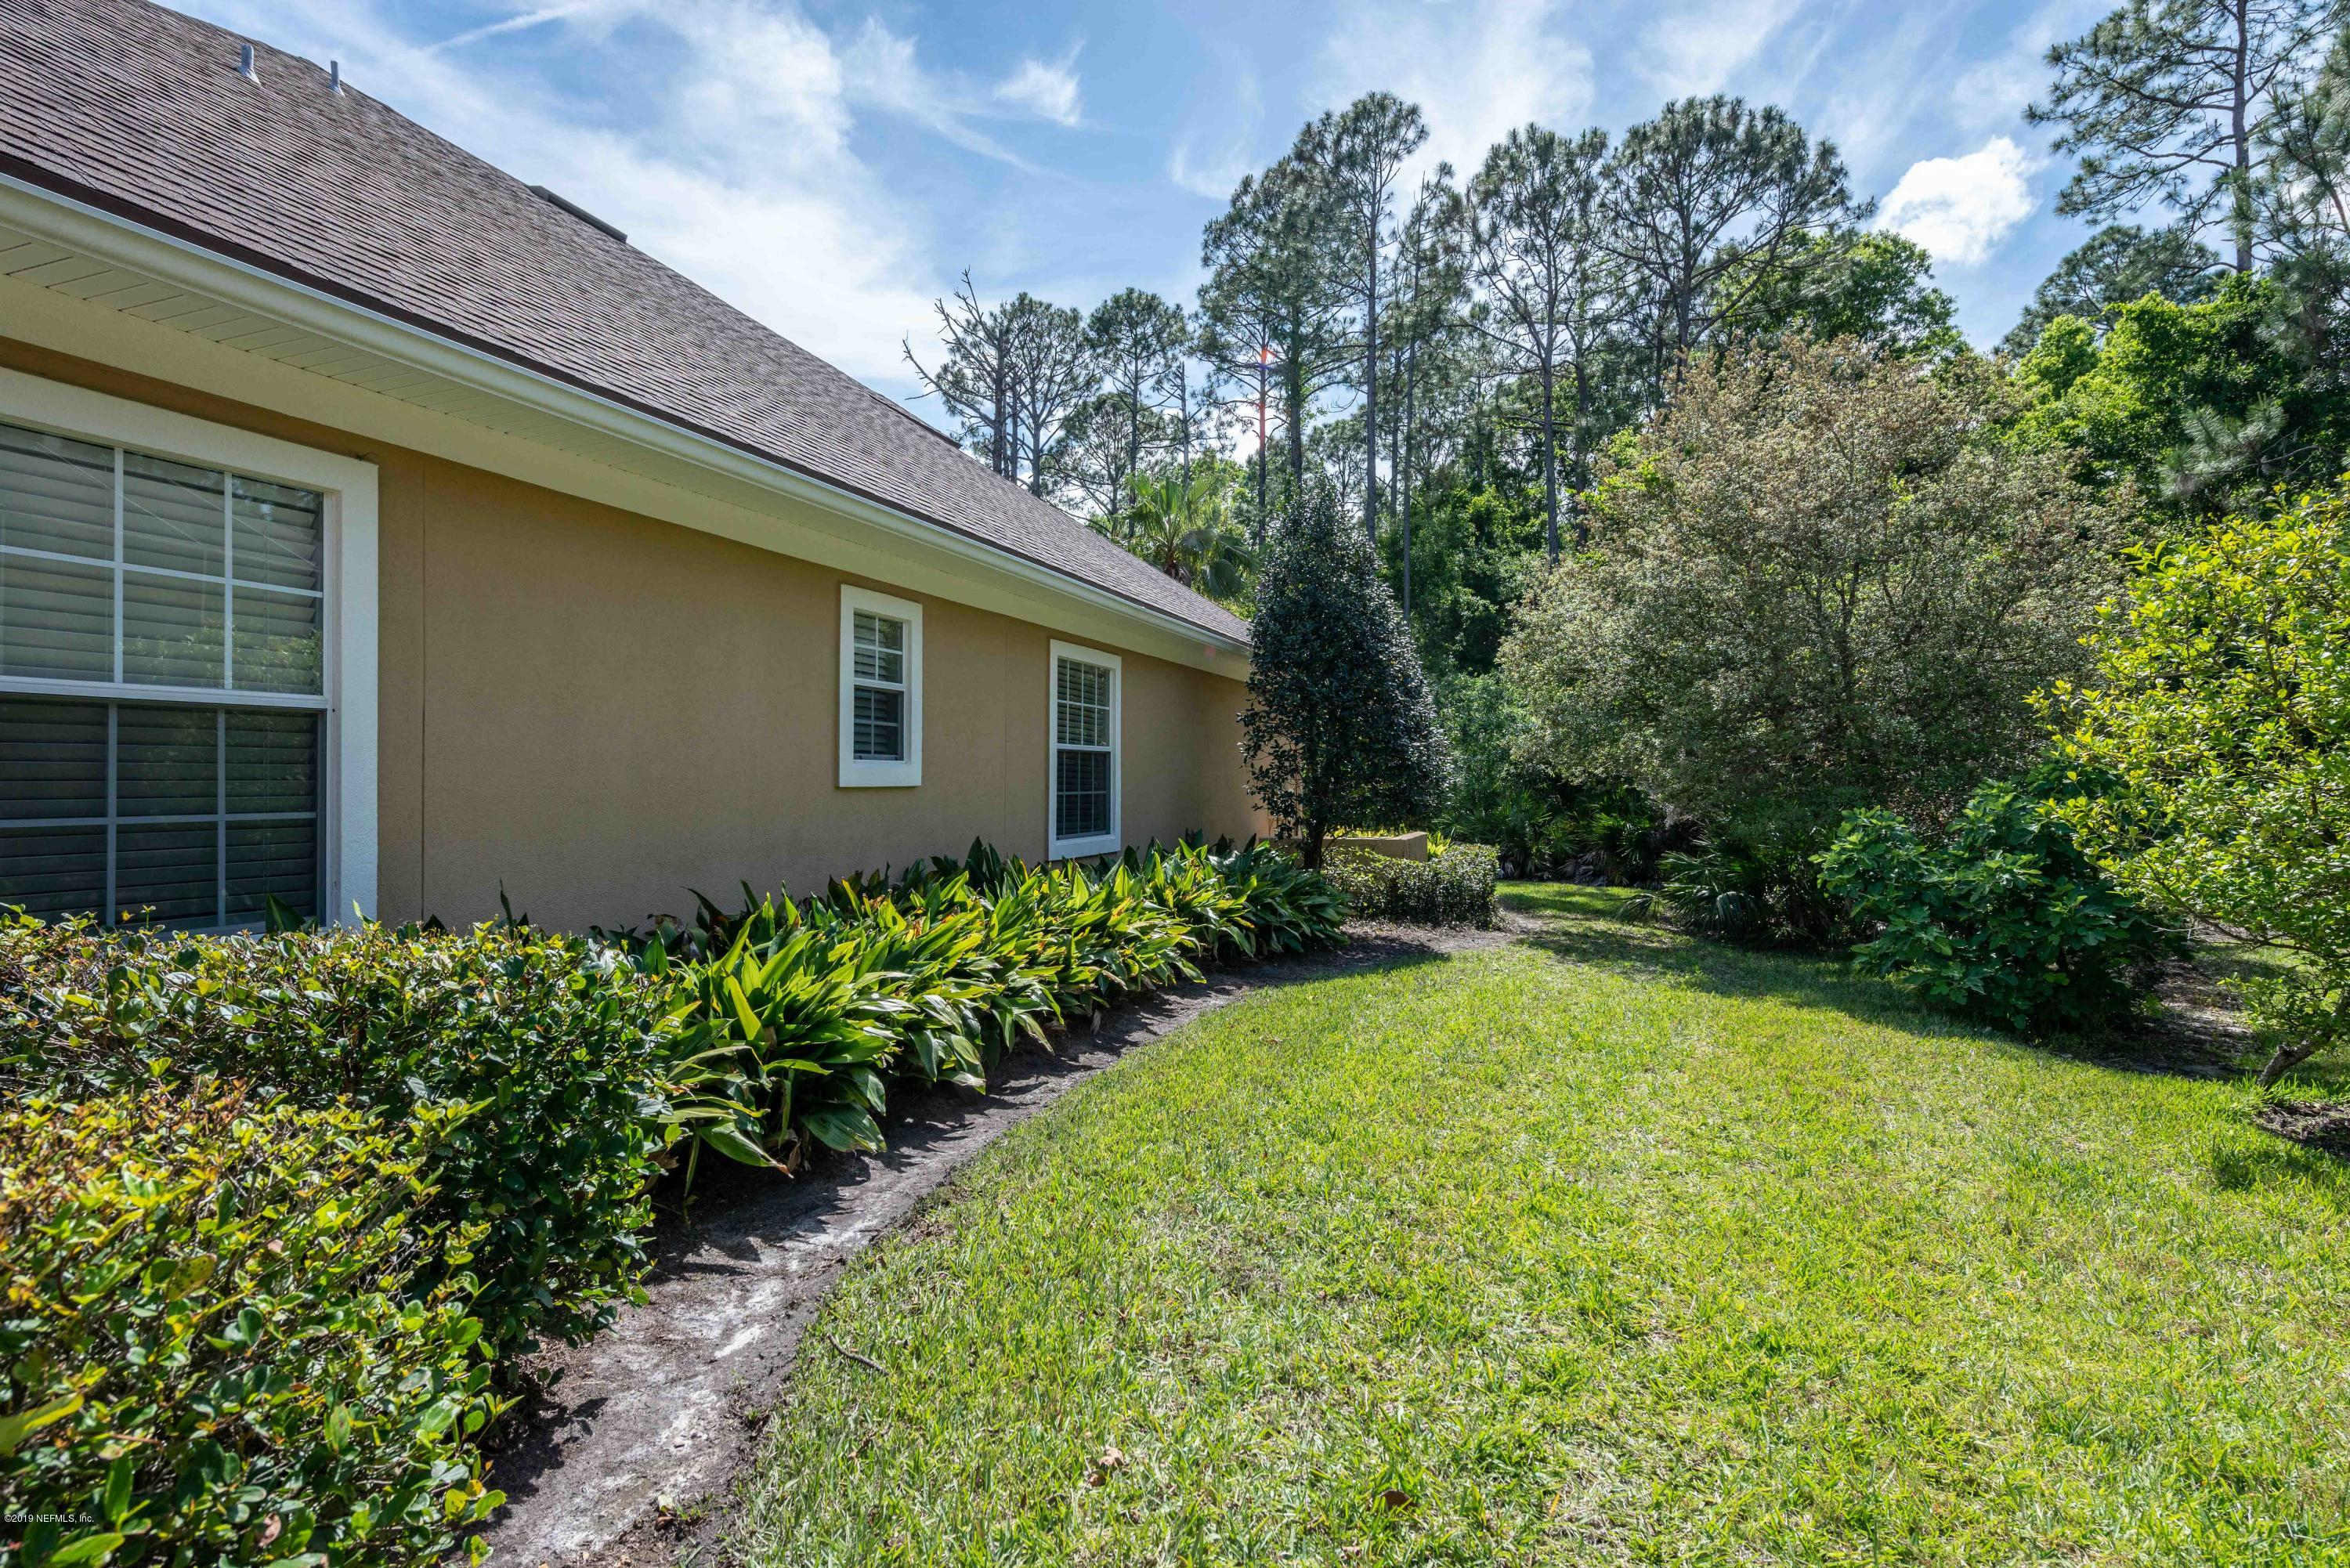 154 CALLE NORTE, ST AUGUSTINE, FLORIDA 32095, 5 Bedrooms Bedrooms, ,4 BathroomsBathrooms,Residential - single family,For sale,CALLE NORTE,990469